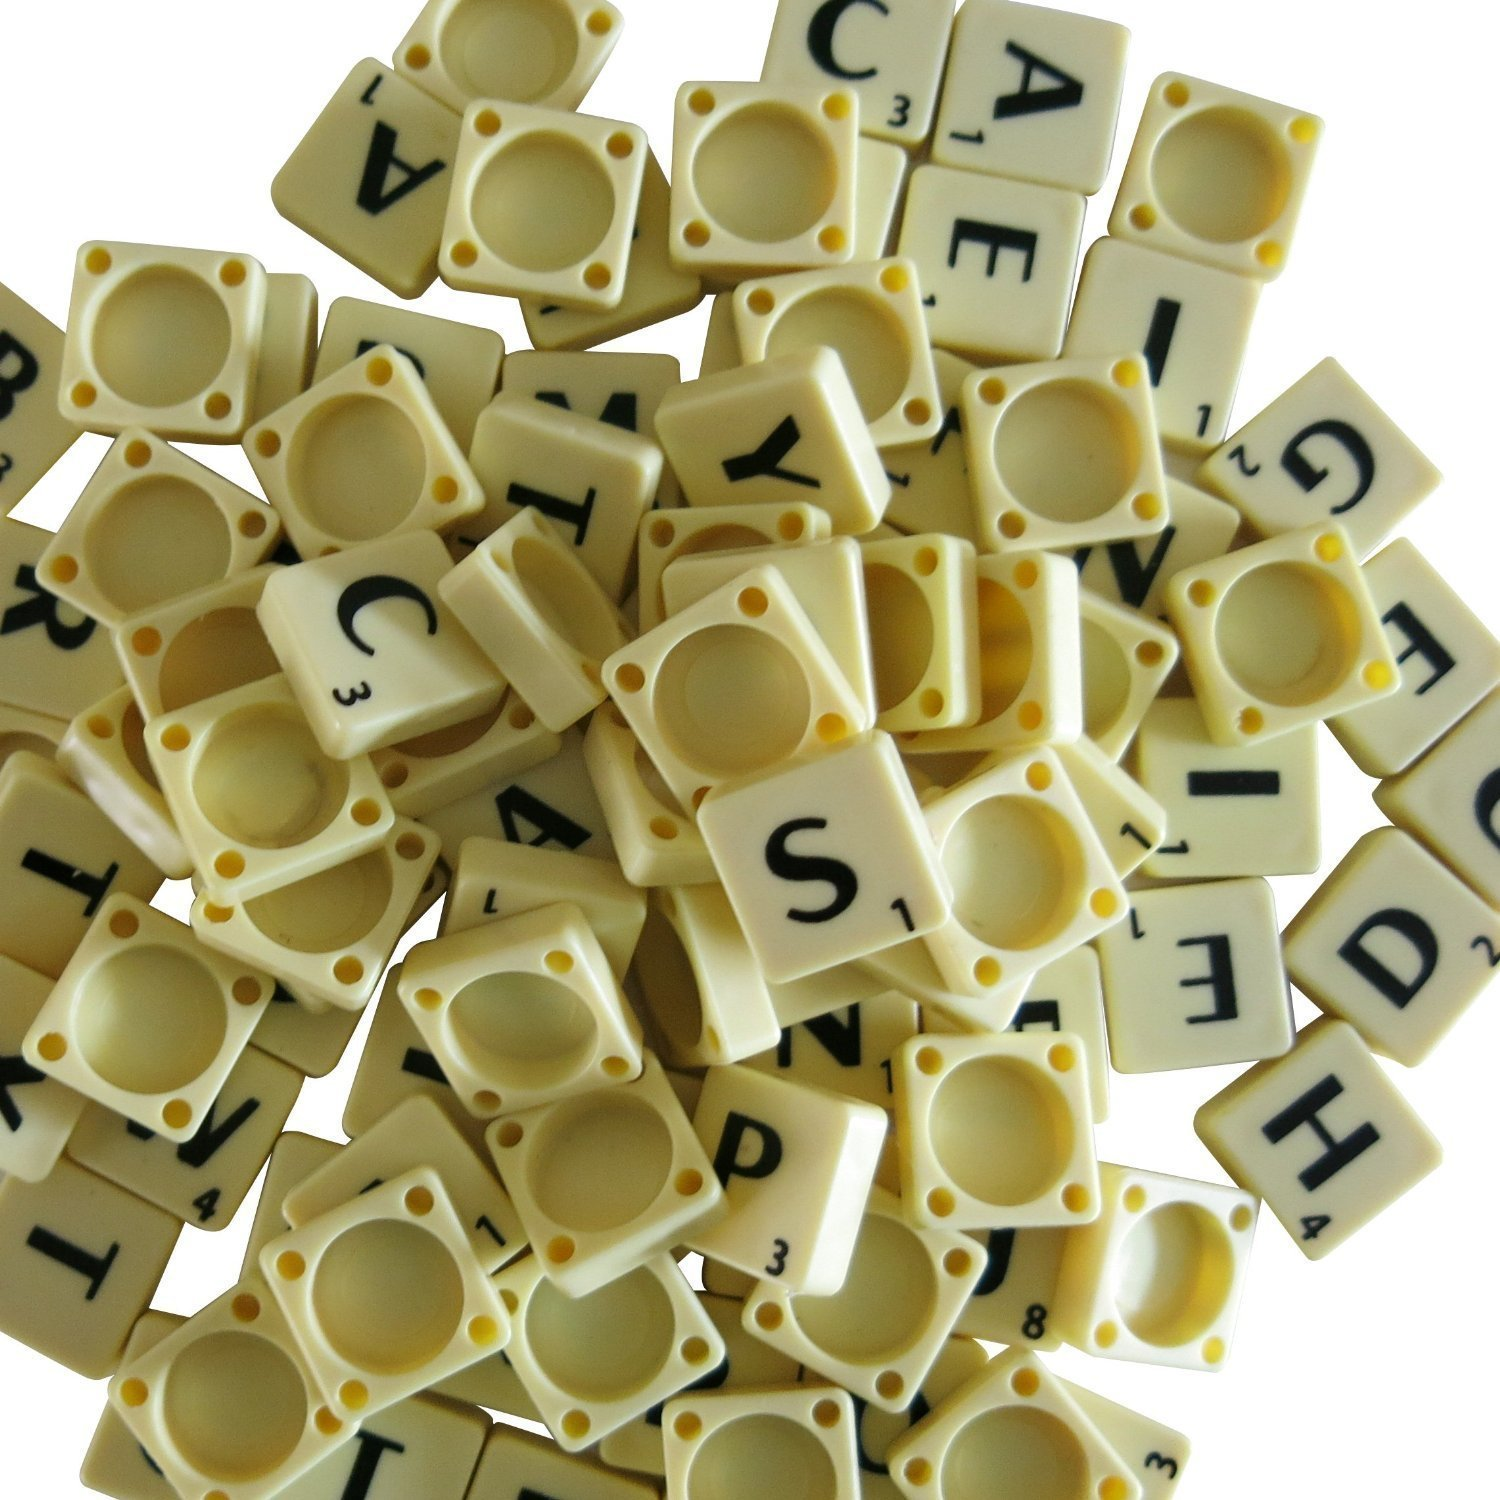 Generic Full Set Of Scrabble Tiles (100 Tiles) - Black Letters On Ivory Plastic Tiles - Replacement, Crafts, Scrapbooking And Jewellery